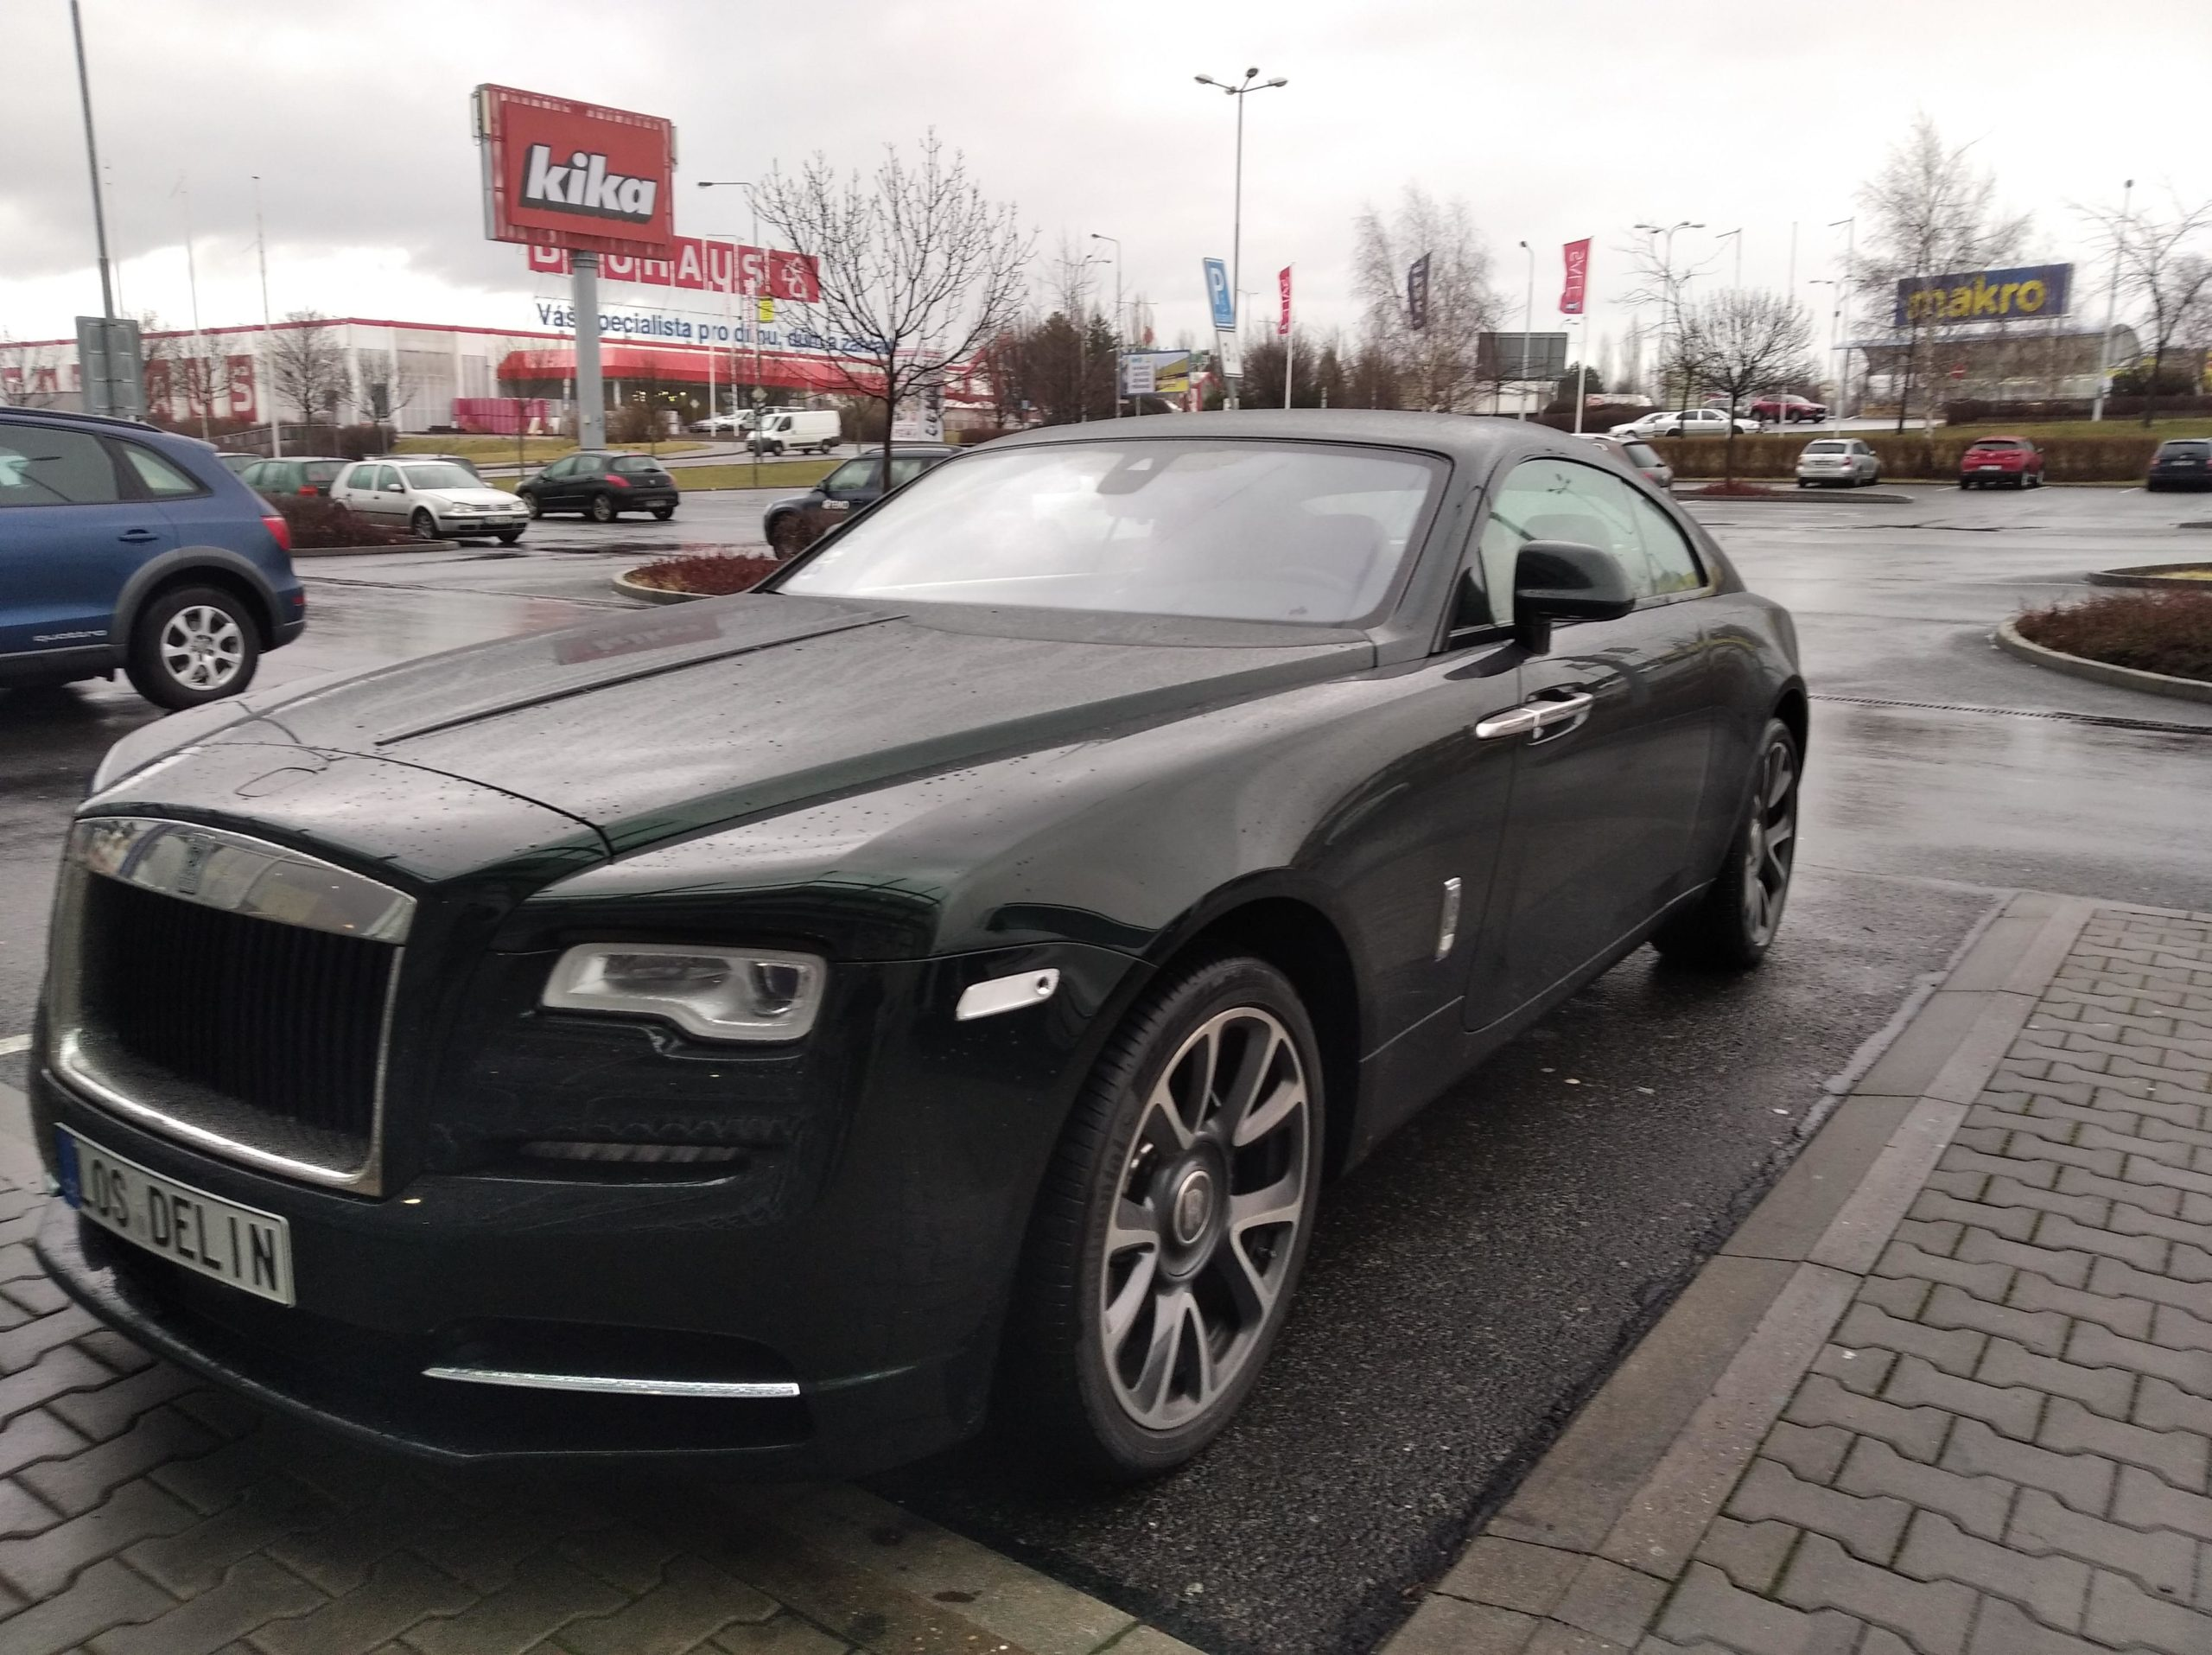 Spotted a Rolls-Royce Wraith